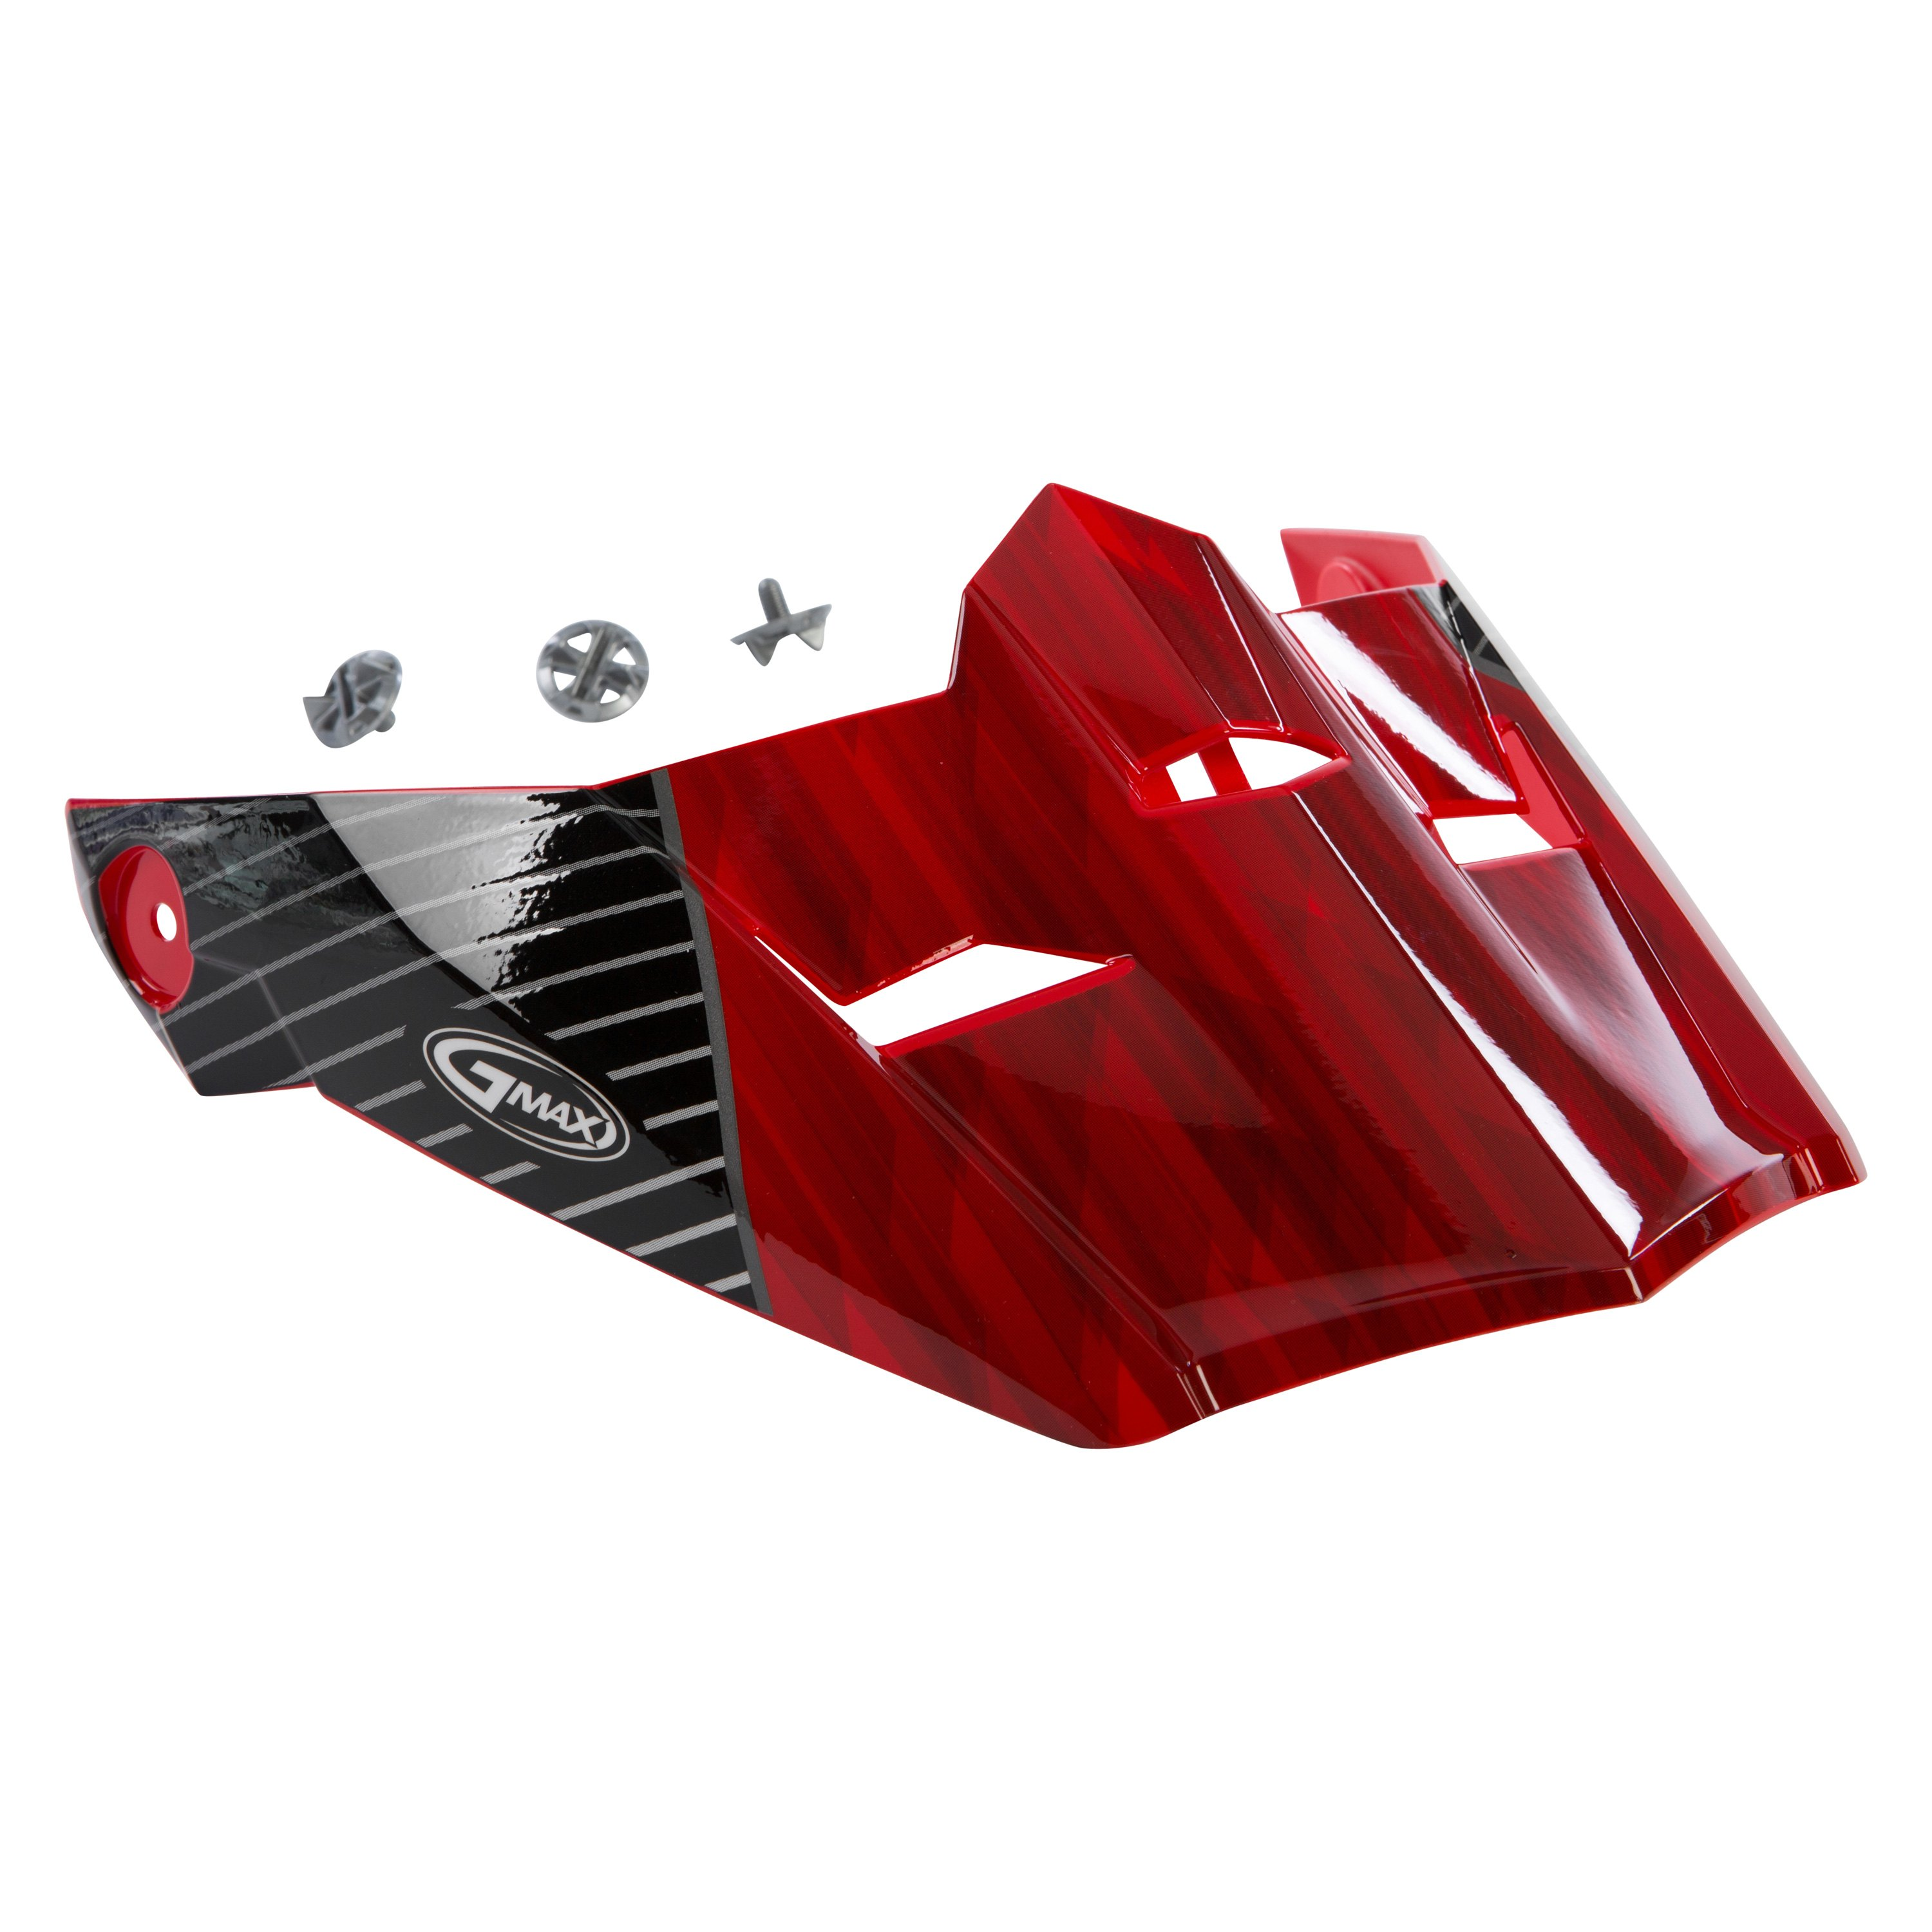 Gmax 174 G046886 Small Large Red Black Visor For Mx 46y